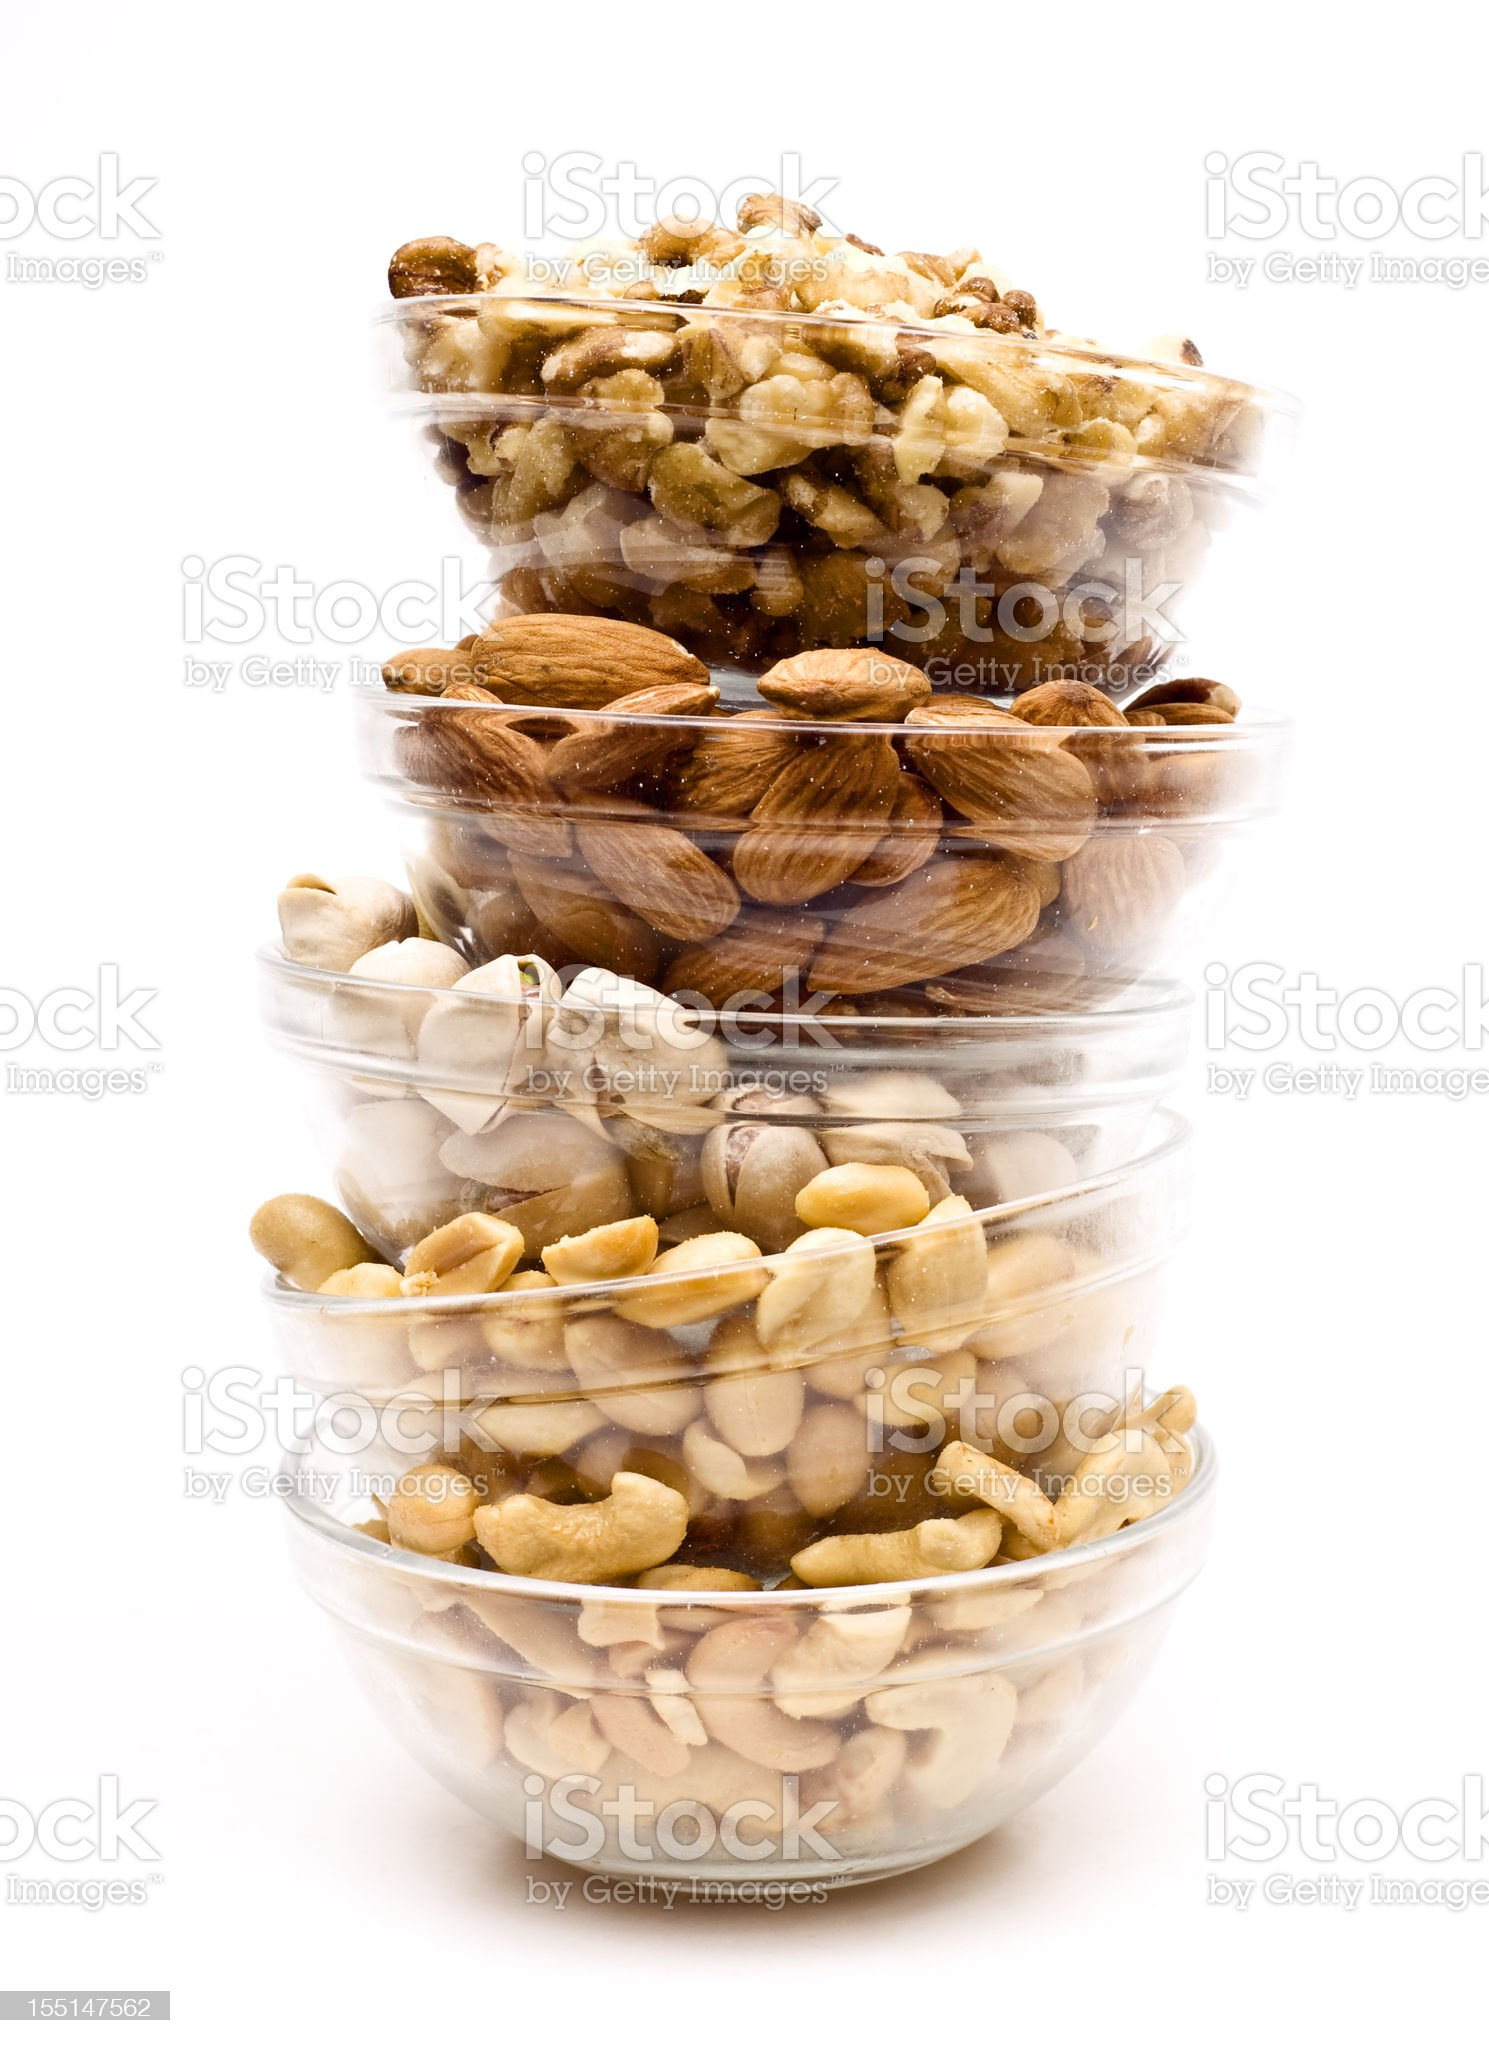 Glass bowls with almonds, cashew nuts, pistachios, peanuts royalty-free stock photo